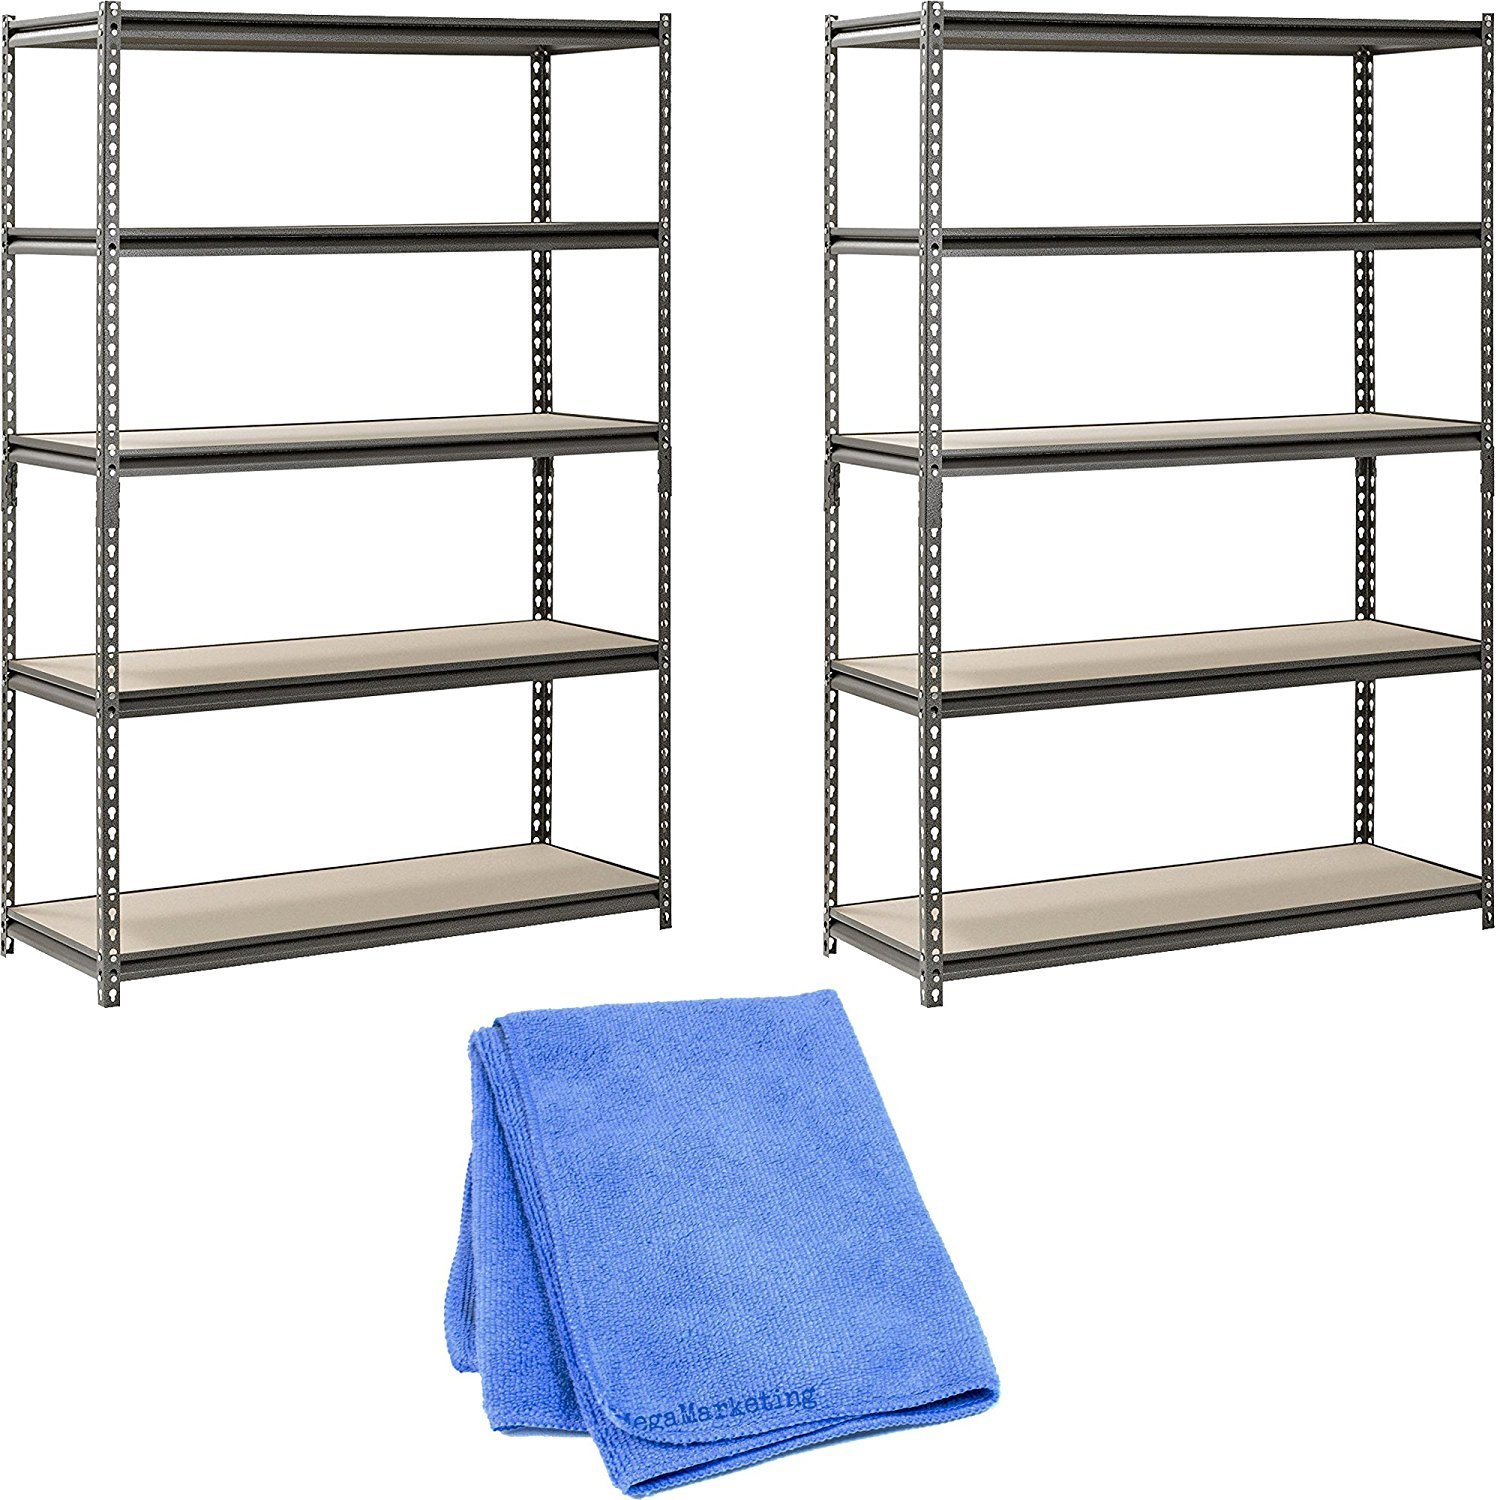 Muscle Rack UR481872PB5P-SV Silver Vein Steel Storage Rack, 5 Adjustable Shelves, 4000 lb. Capacity, 72'' Height x 48'' Width x 18'' Depth (2-Pack) with Towel Cleaner by Muscle Rack